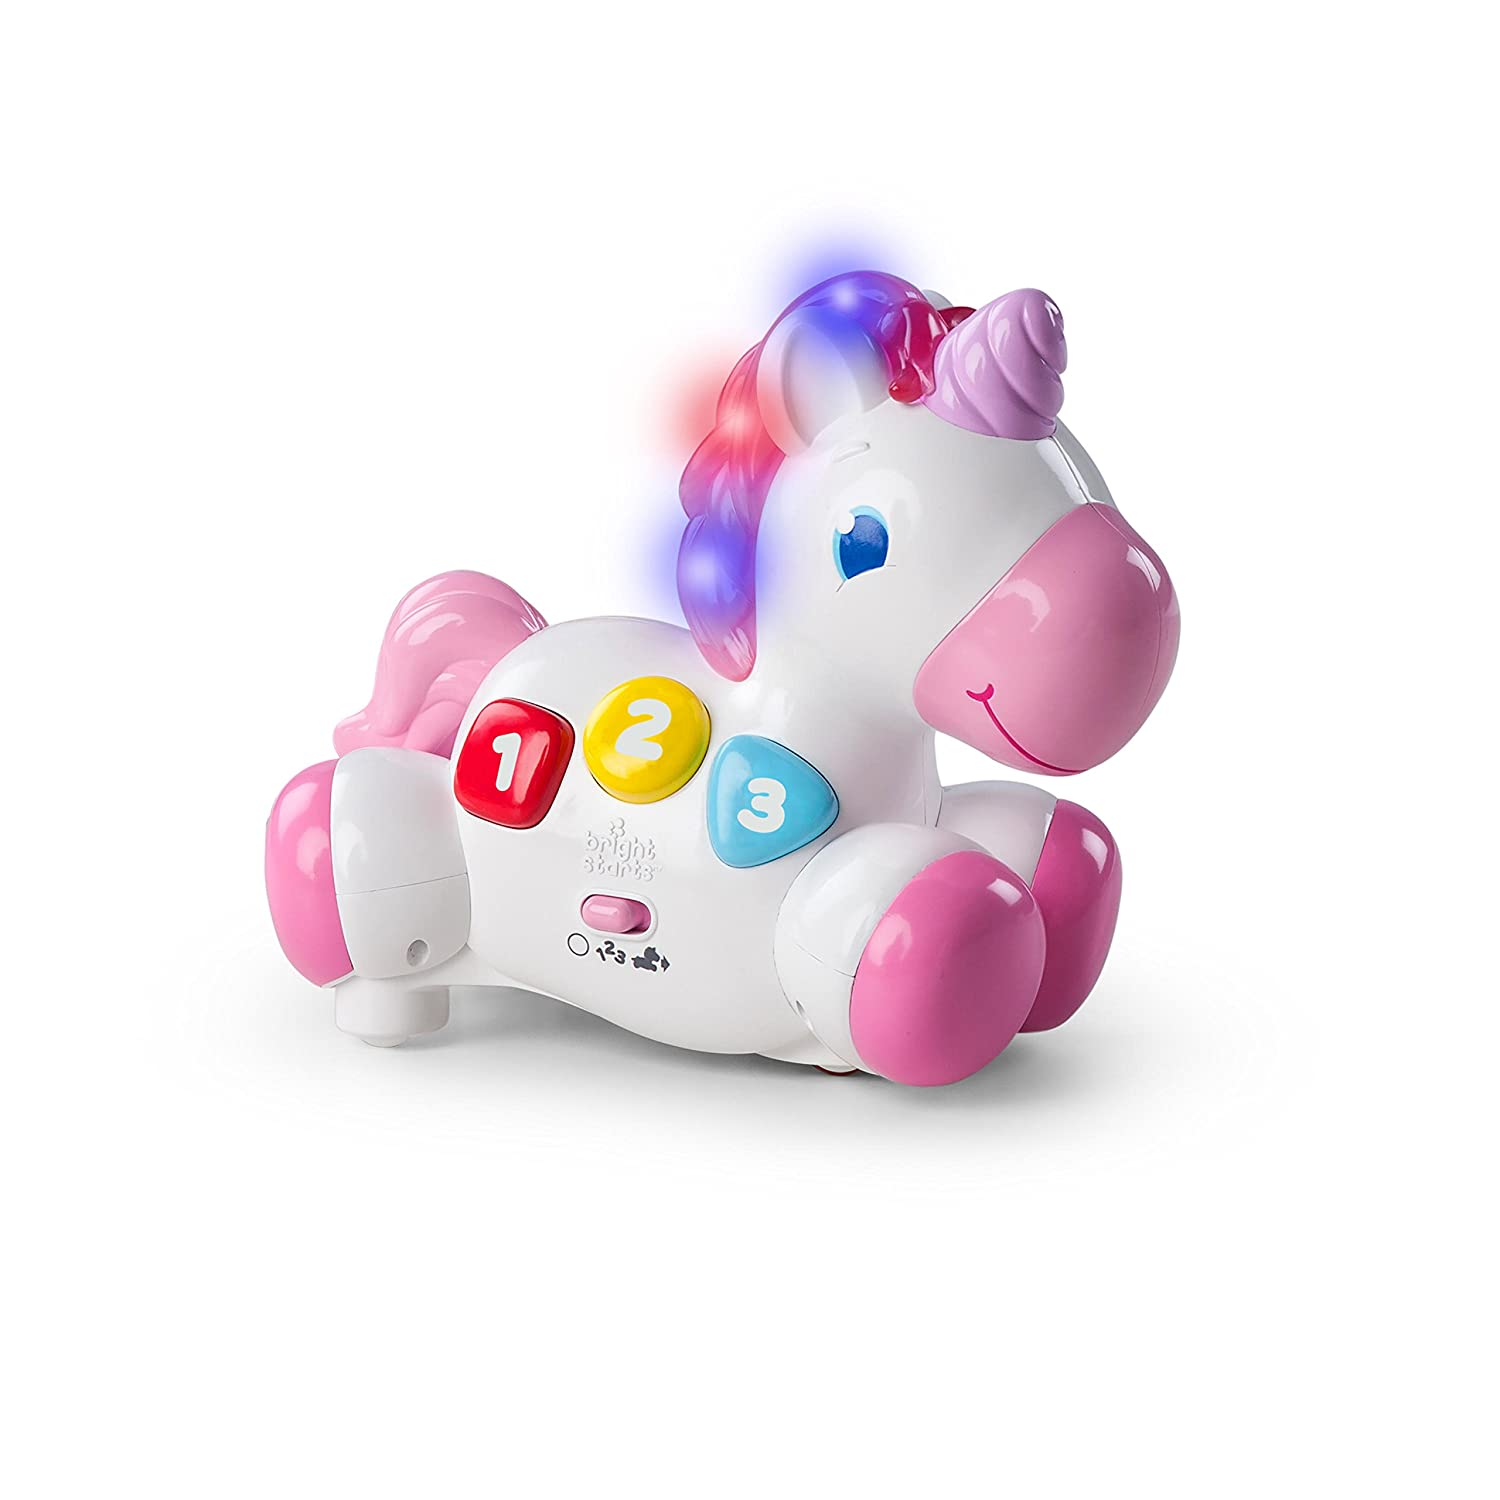 Bright Starts Glow Unicorn Baby Toy KidsII 10307